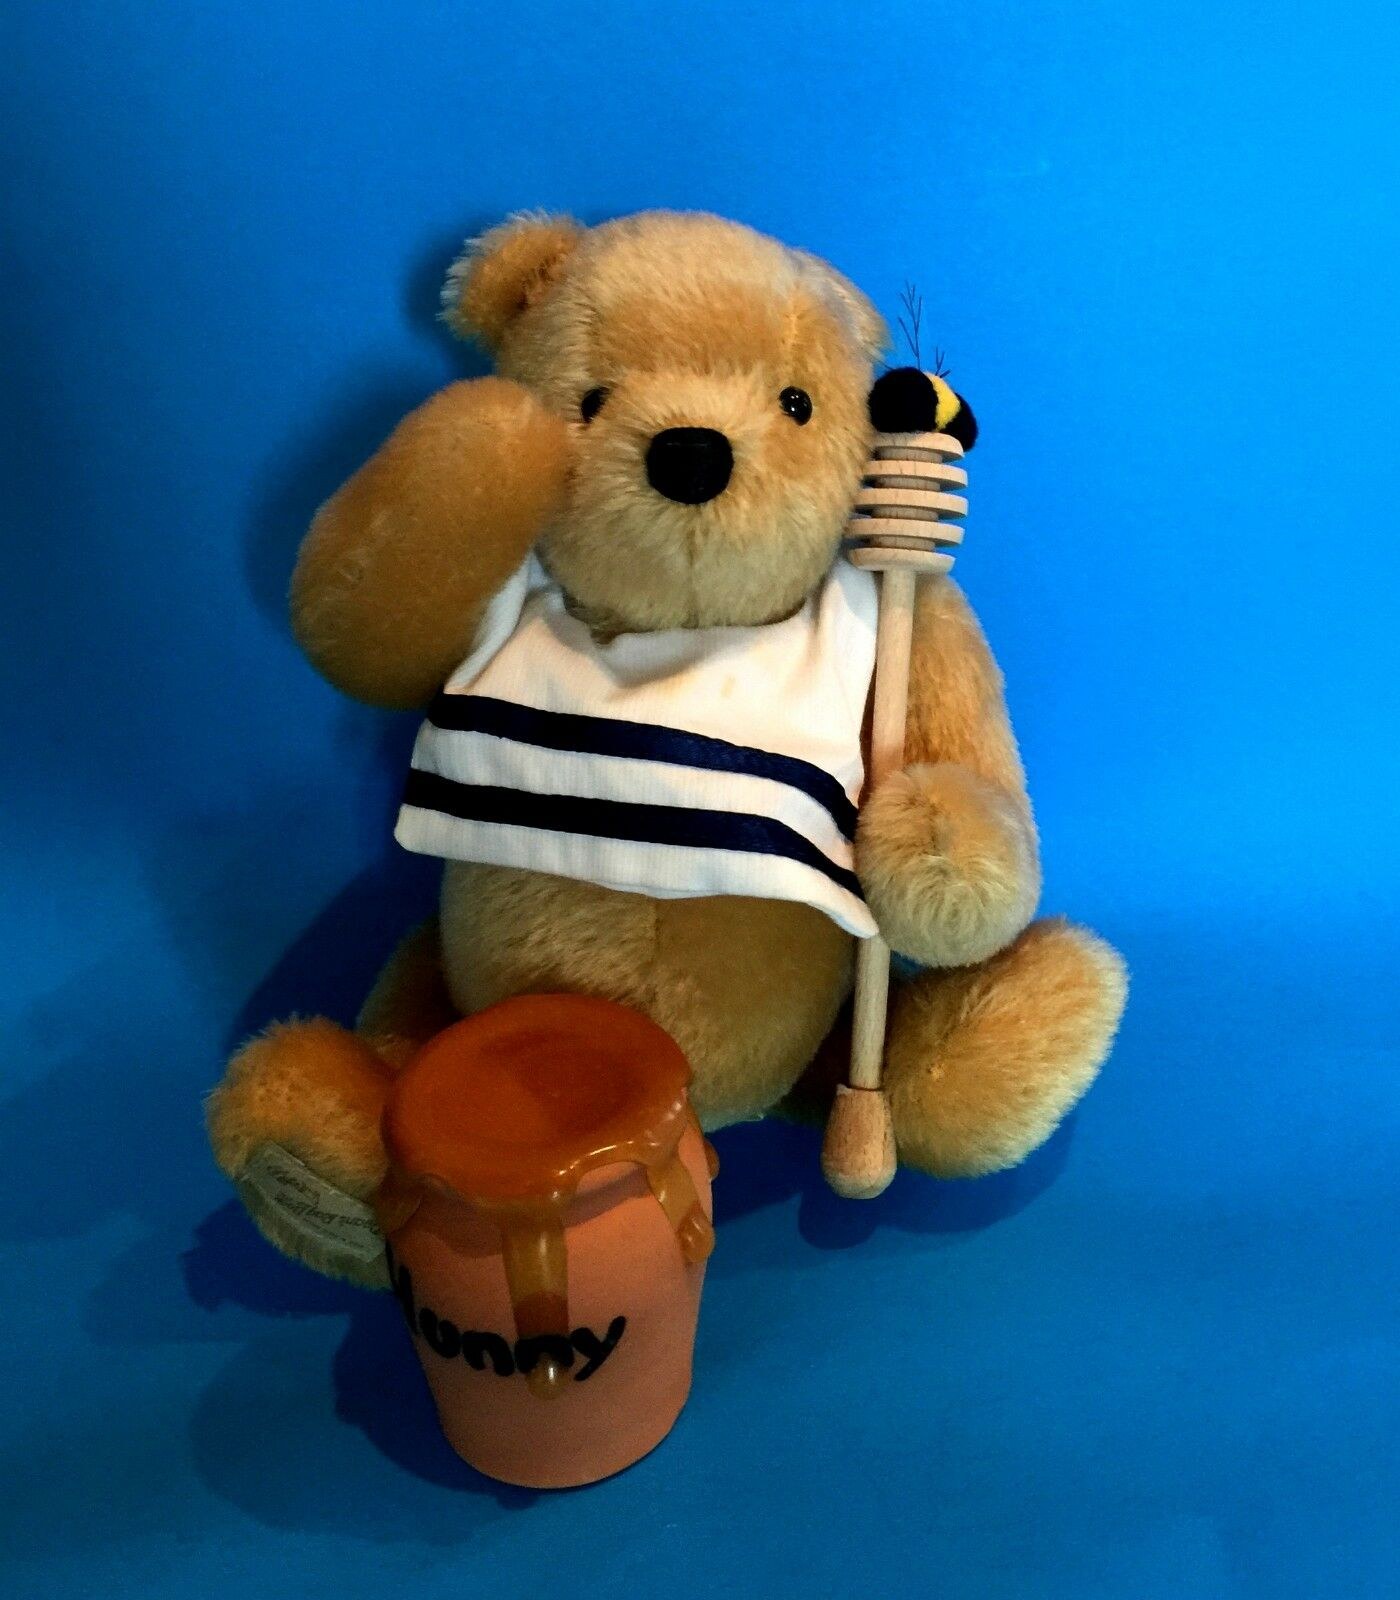 DEAN'S  RUMBLY IN MY TUMMY  MUSICAL POOH EXCLUSIVE FOR THEODORE'S BEAR EMPORIUM